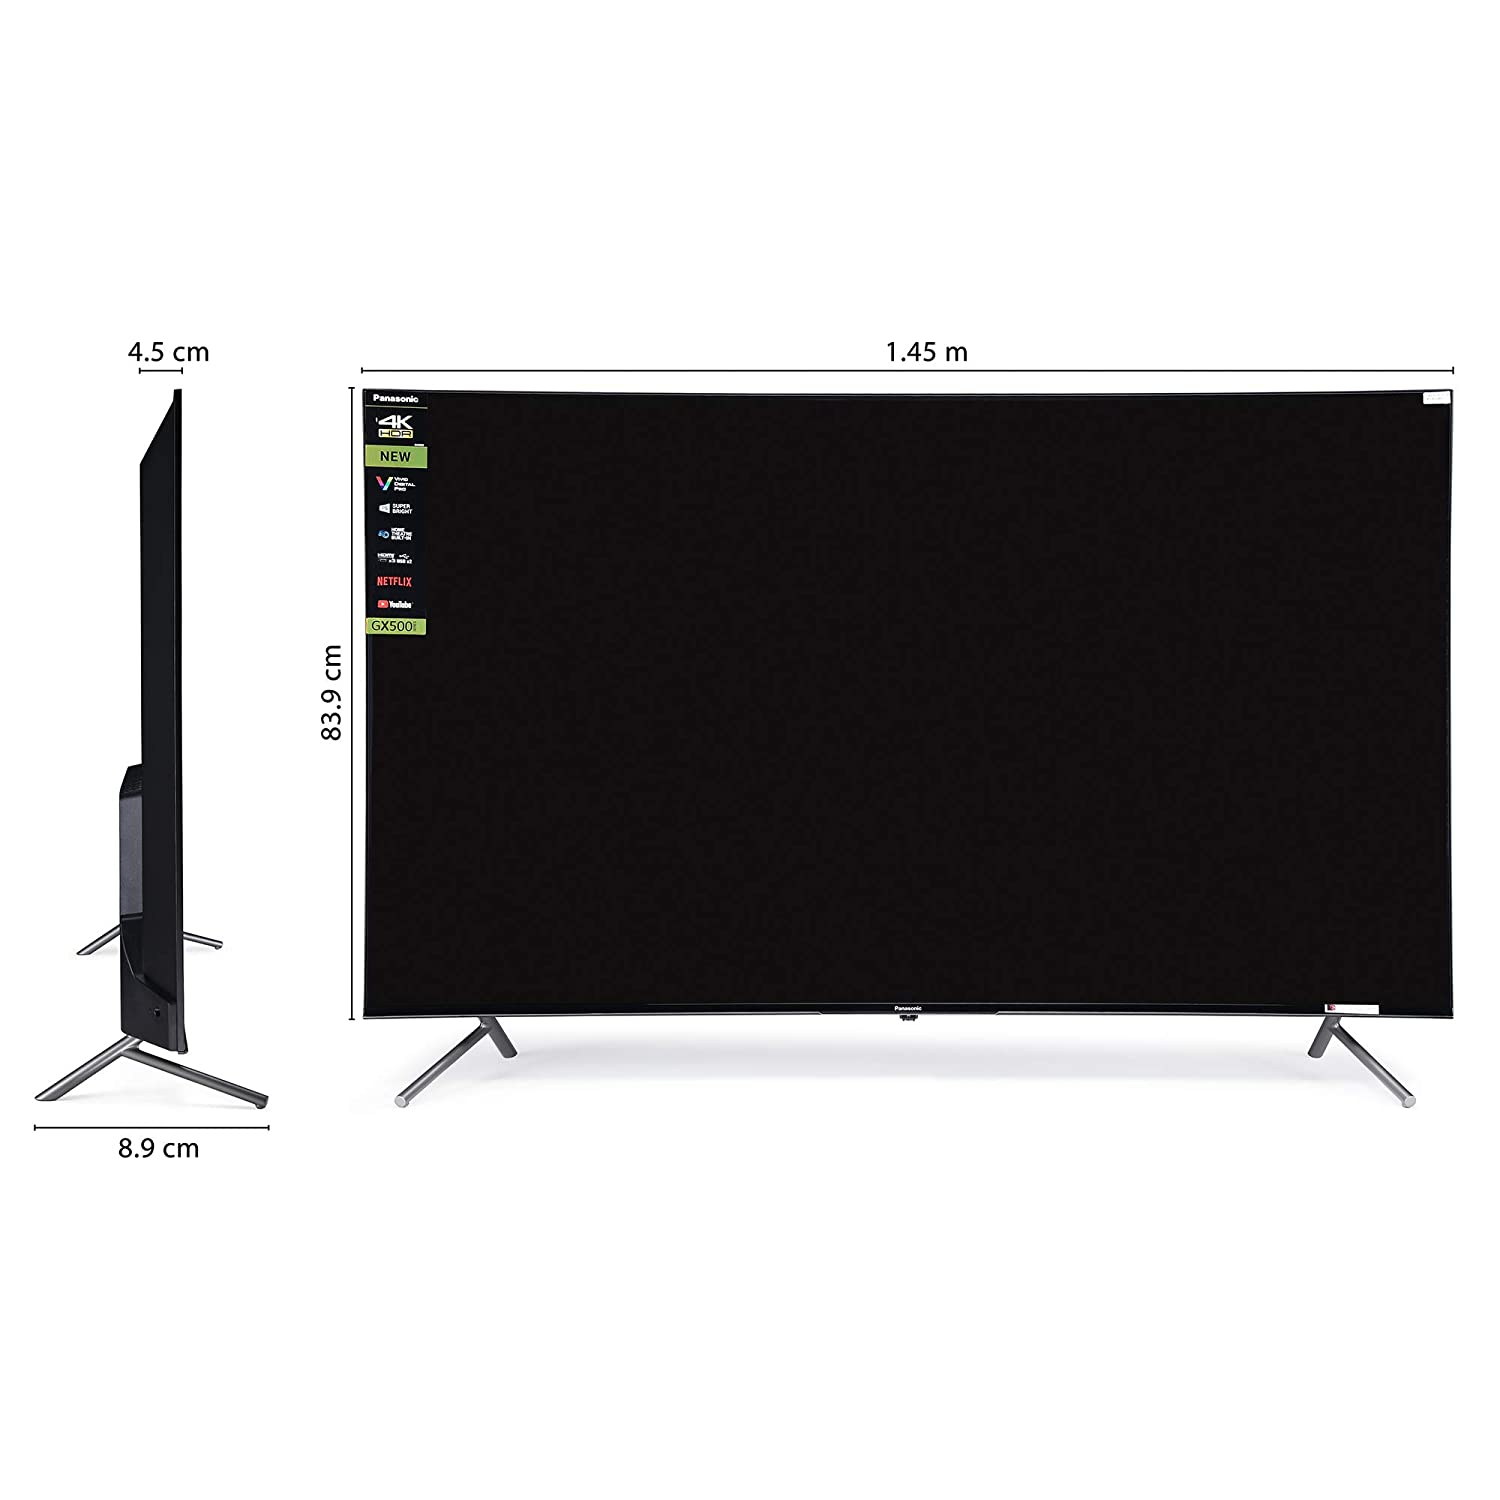 Panasonic TH-65GX500DX - Best 65 inch TVs in India - Quality Construction